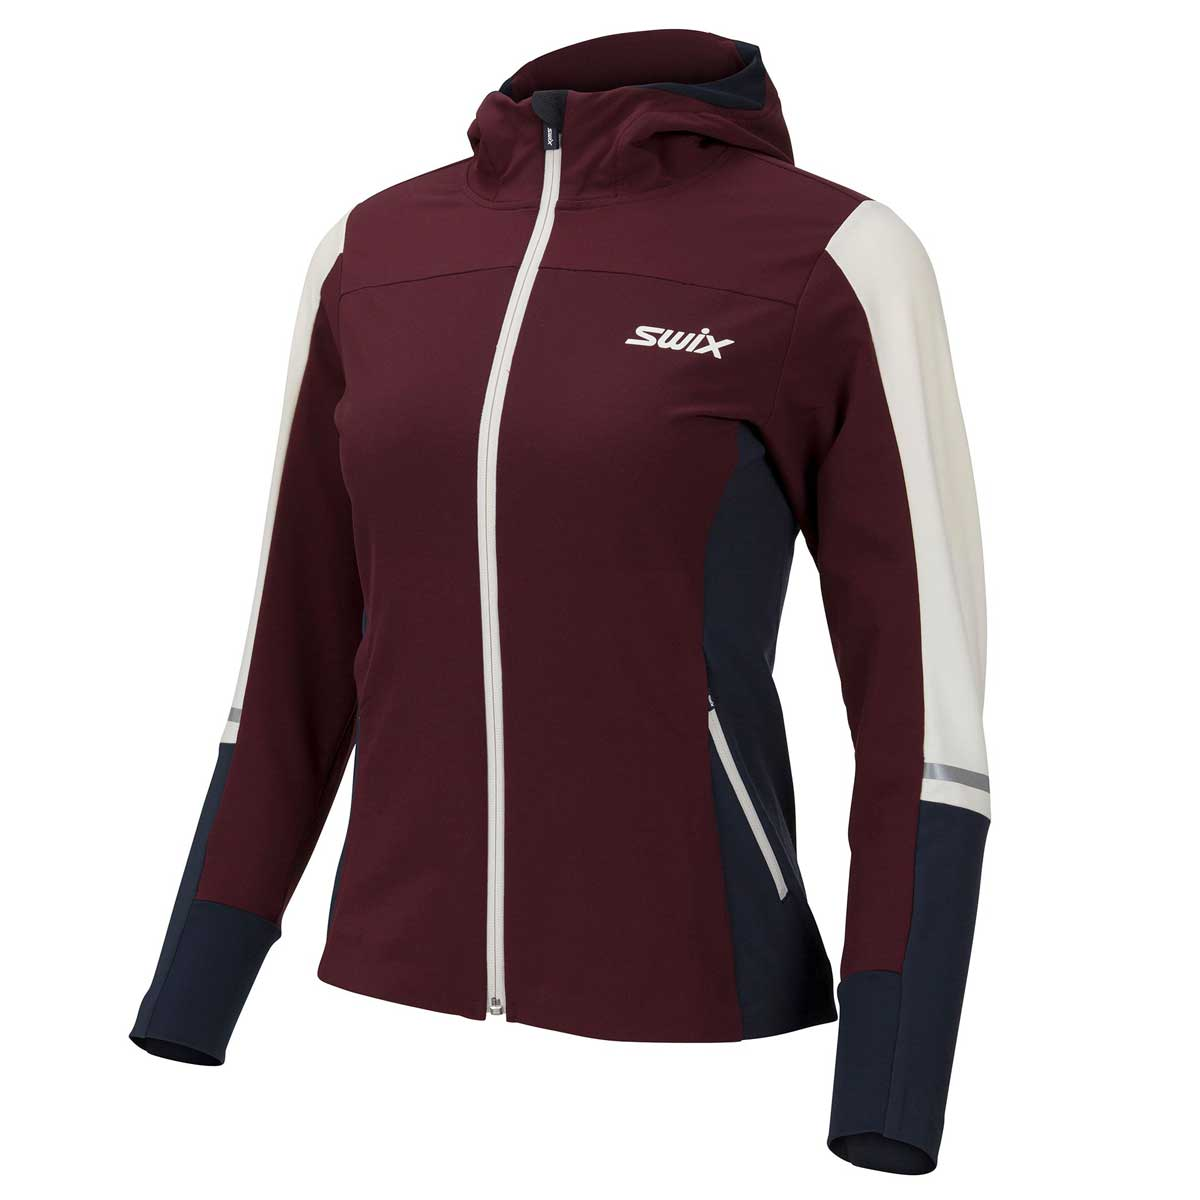 Swix Women's Evolution Soft Shield Jacket in Dark Aubergine